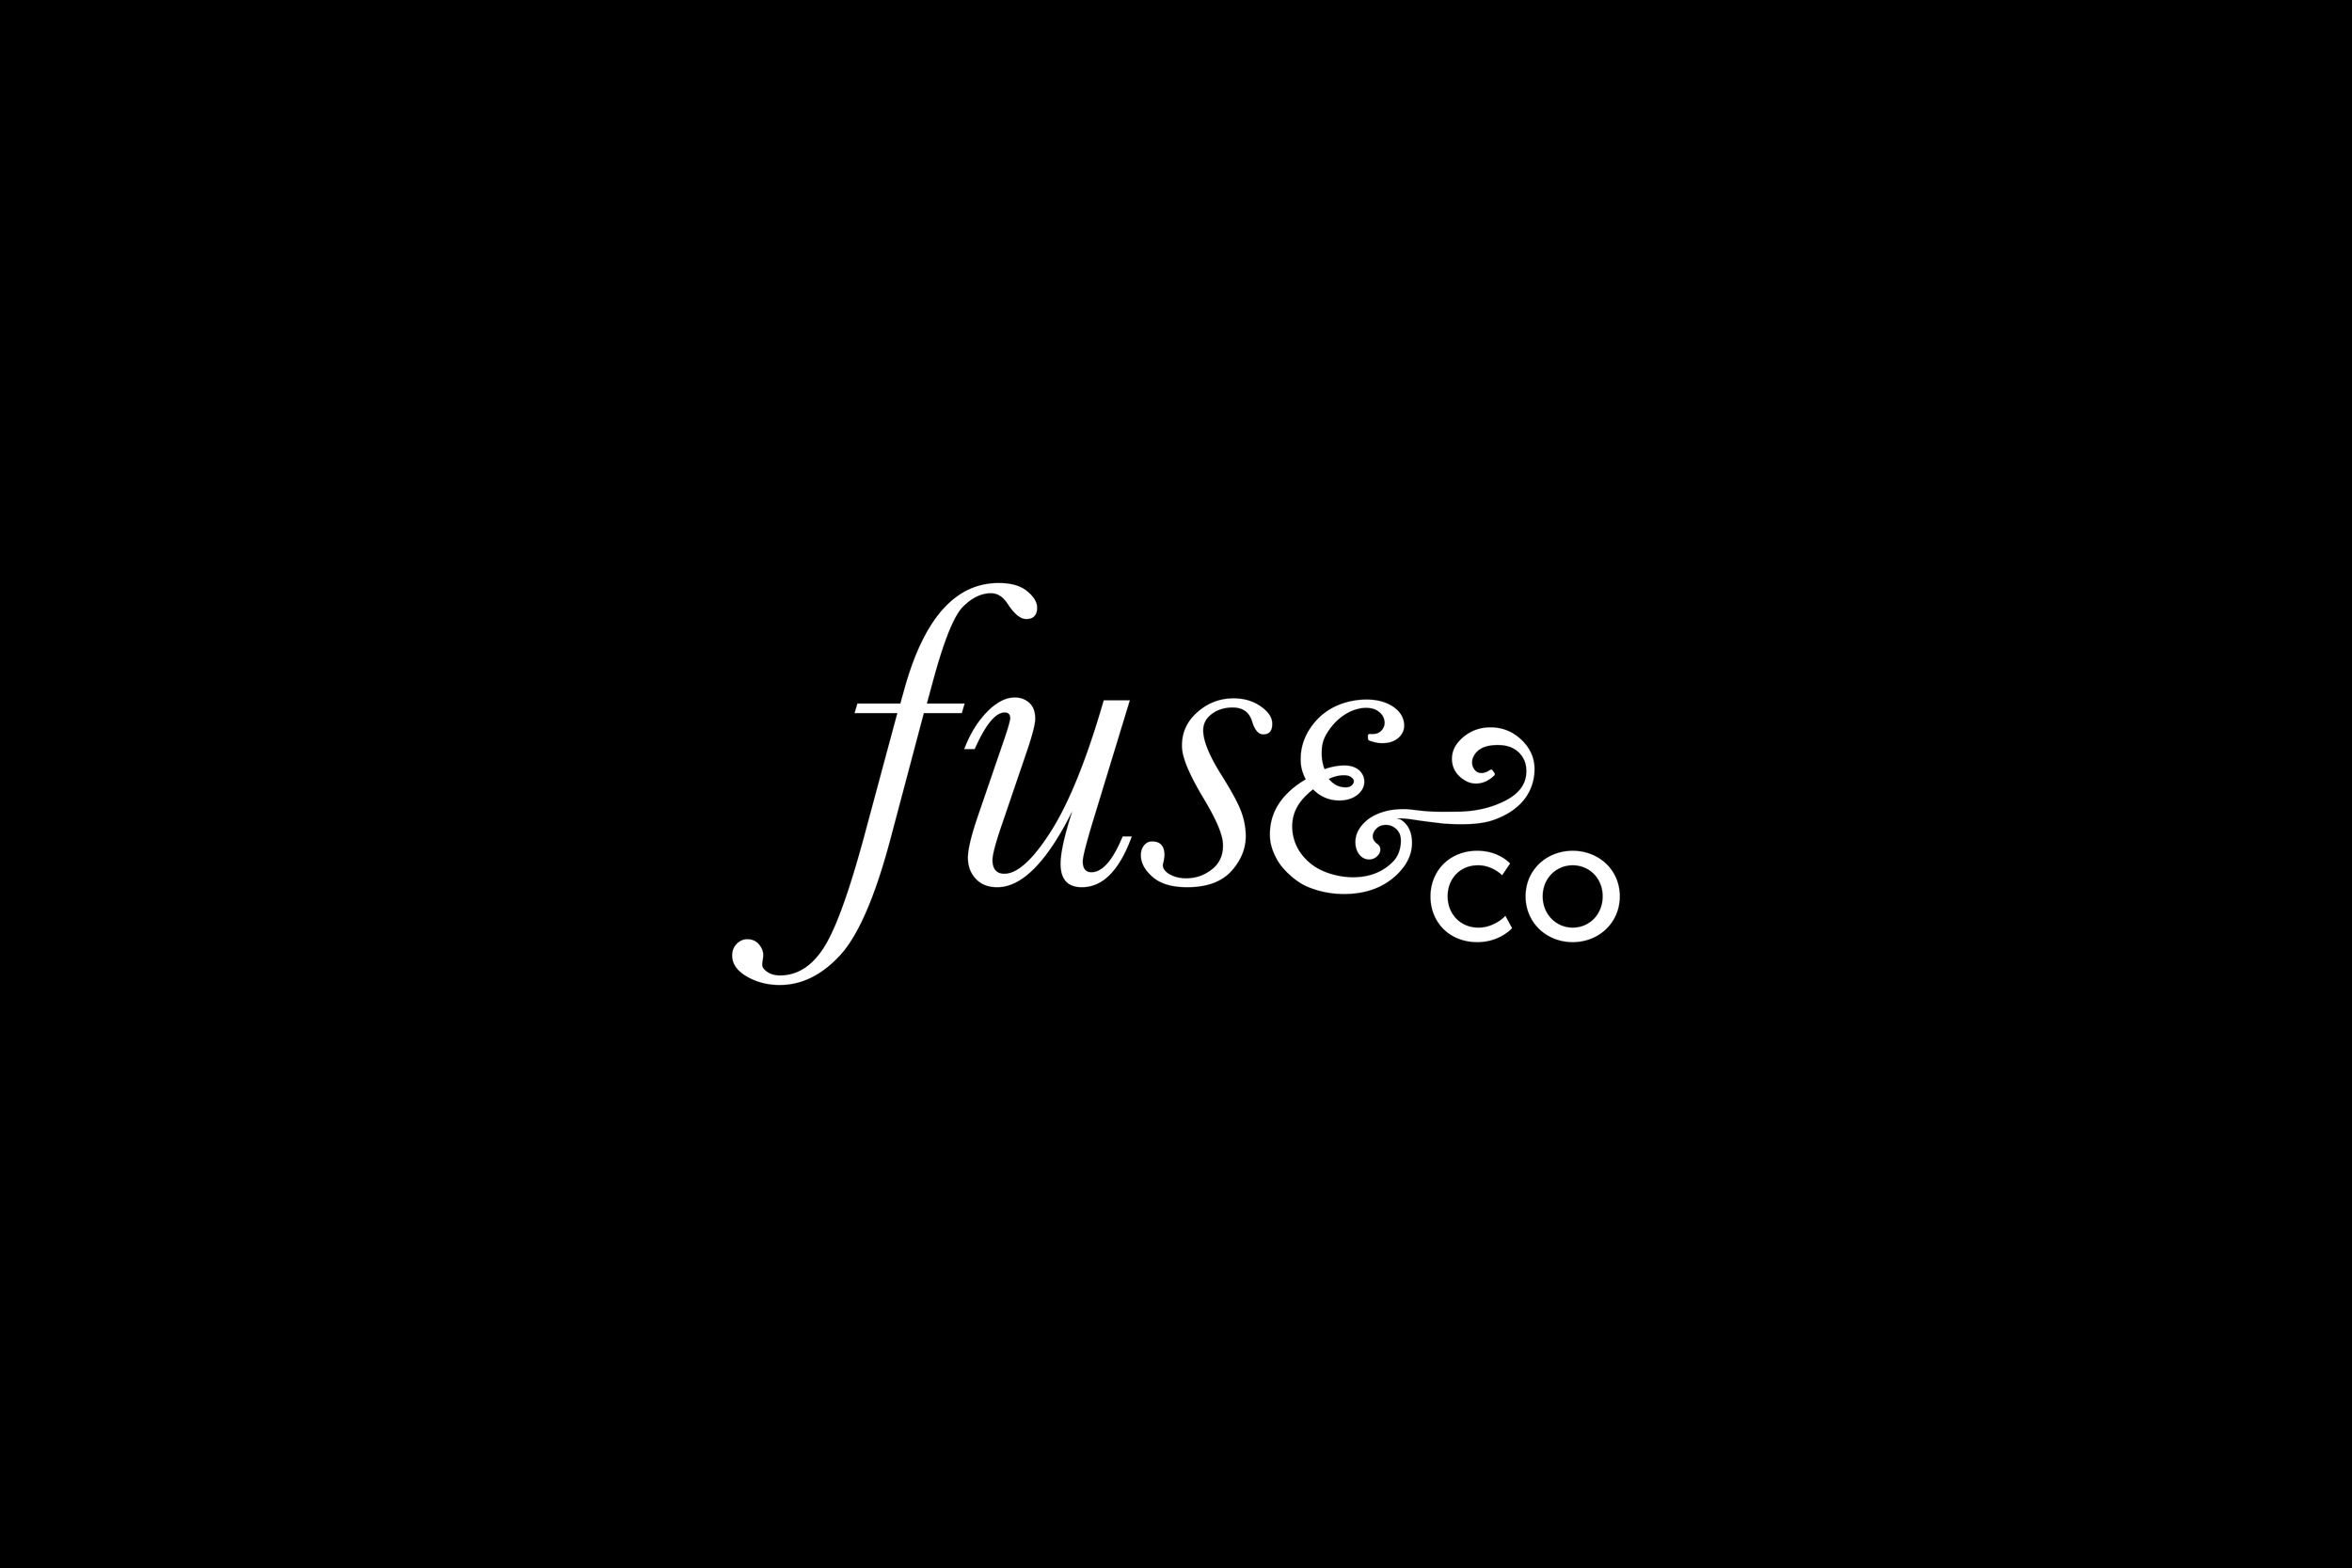 fuse and co.jpg